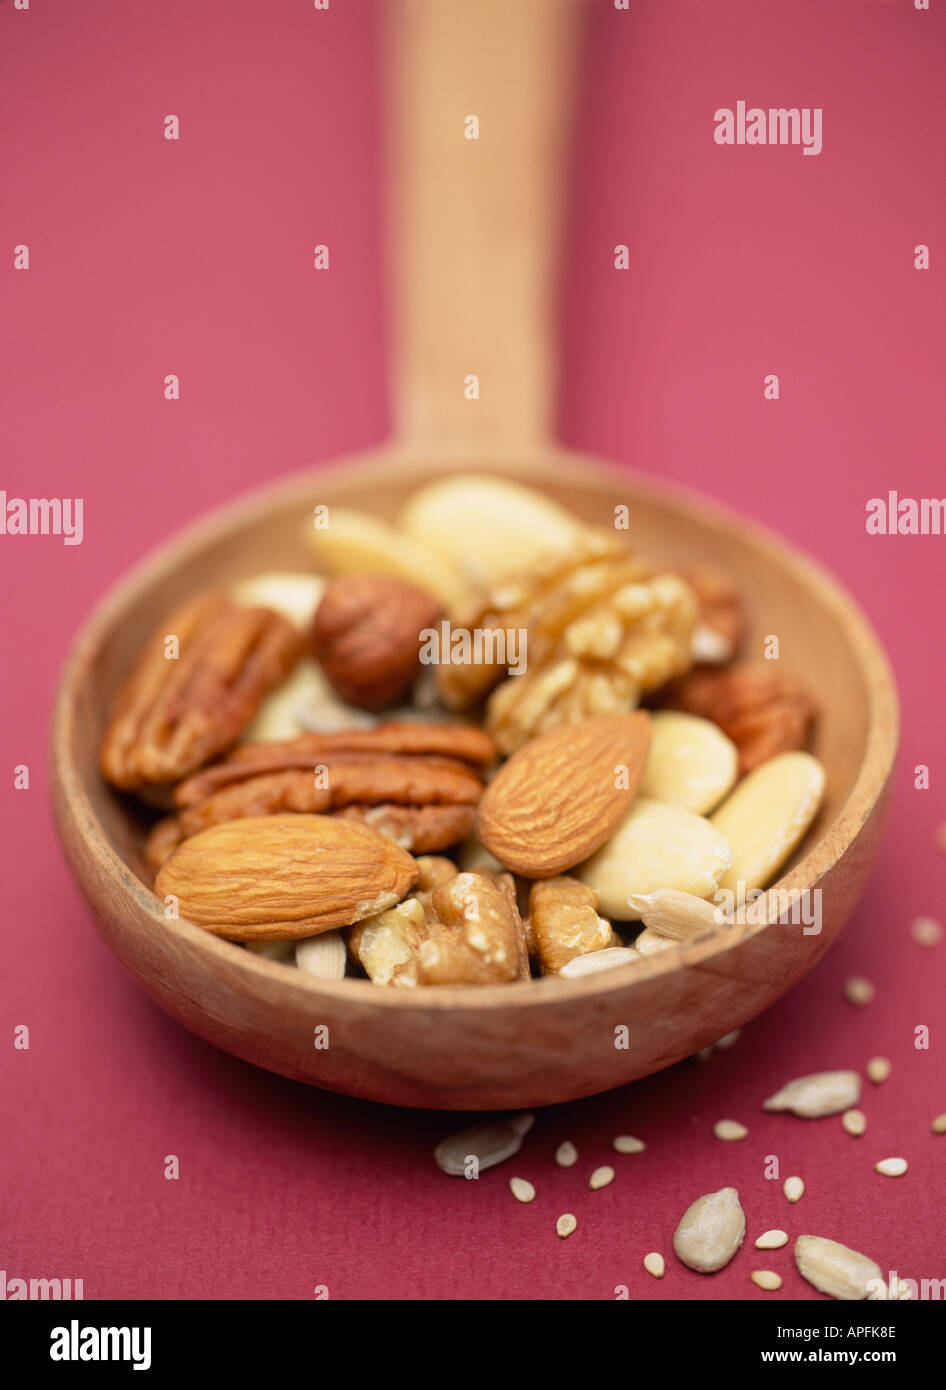 Selection of nuts and seeds on a wooden spoon on dark purple background - Stock Image